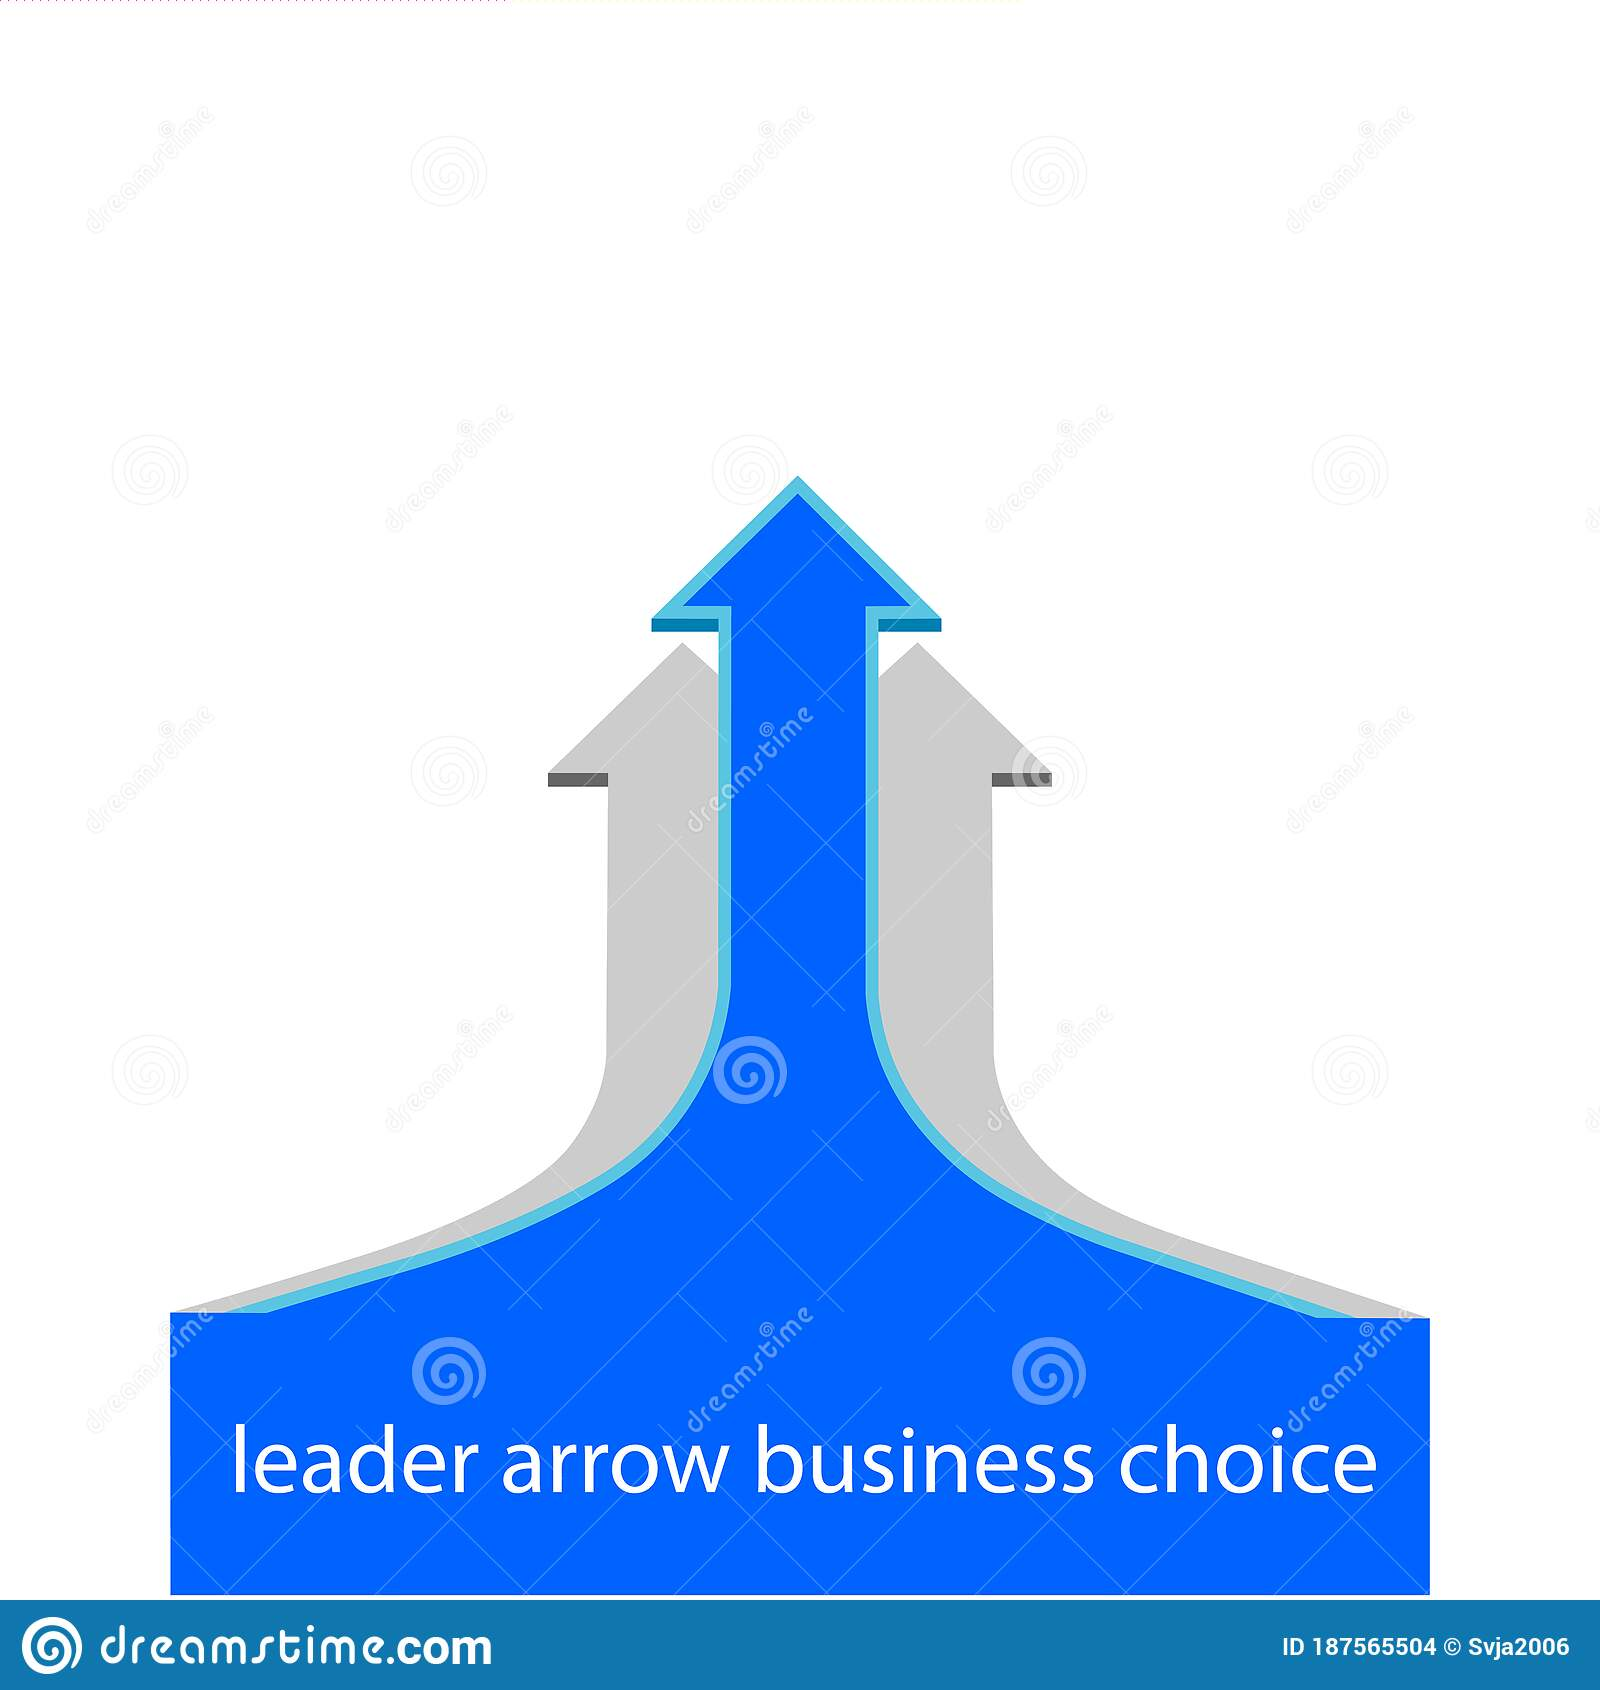 Eps Icon Leader Vector Stock Illustrations 5 736 Eps Icon Leader Vector Stock Illustrations Vectors Clipart Dreamstime